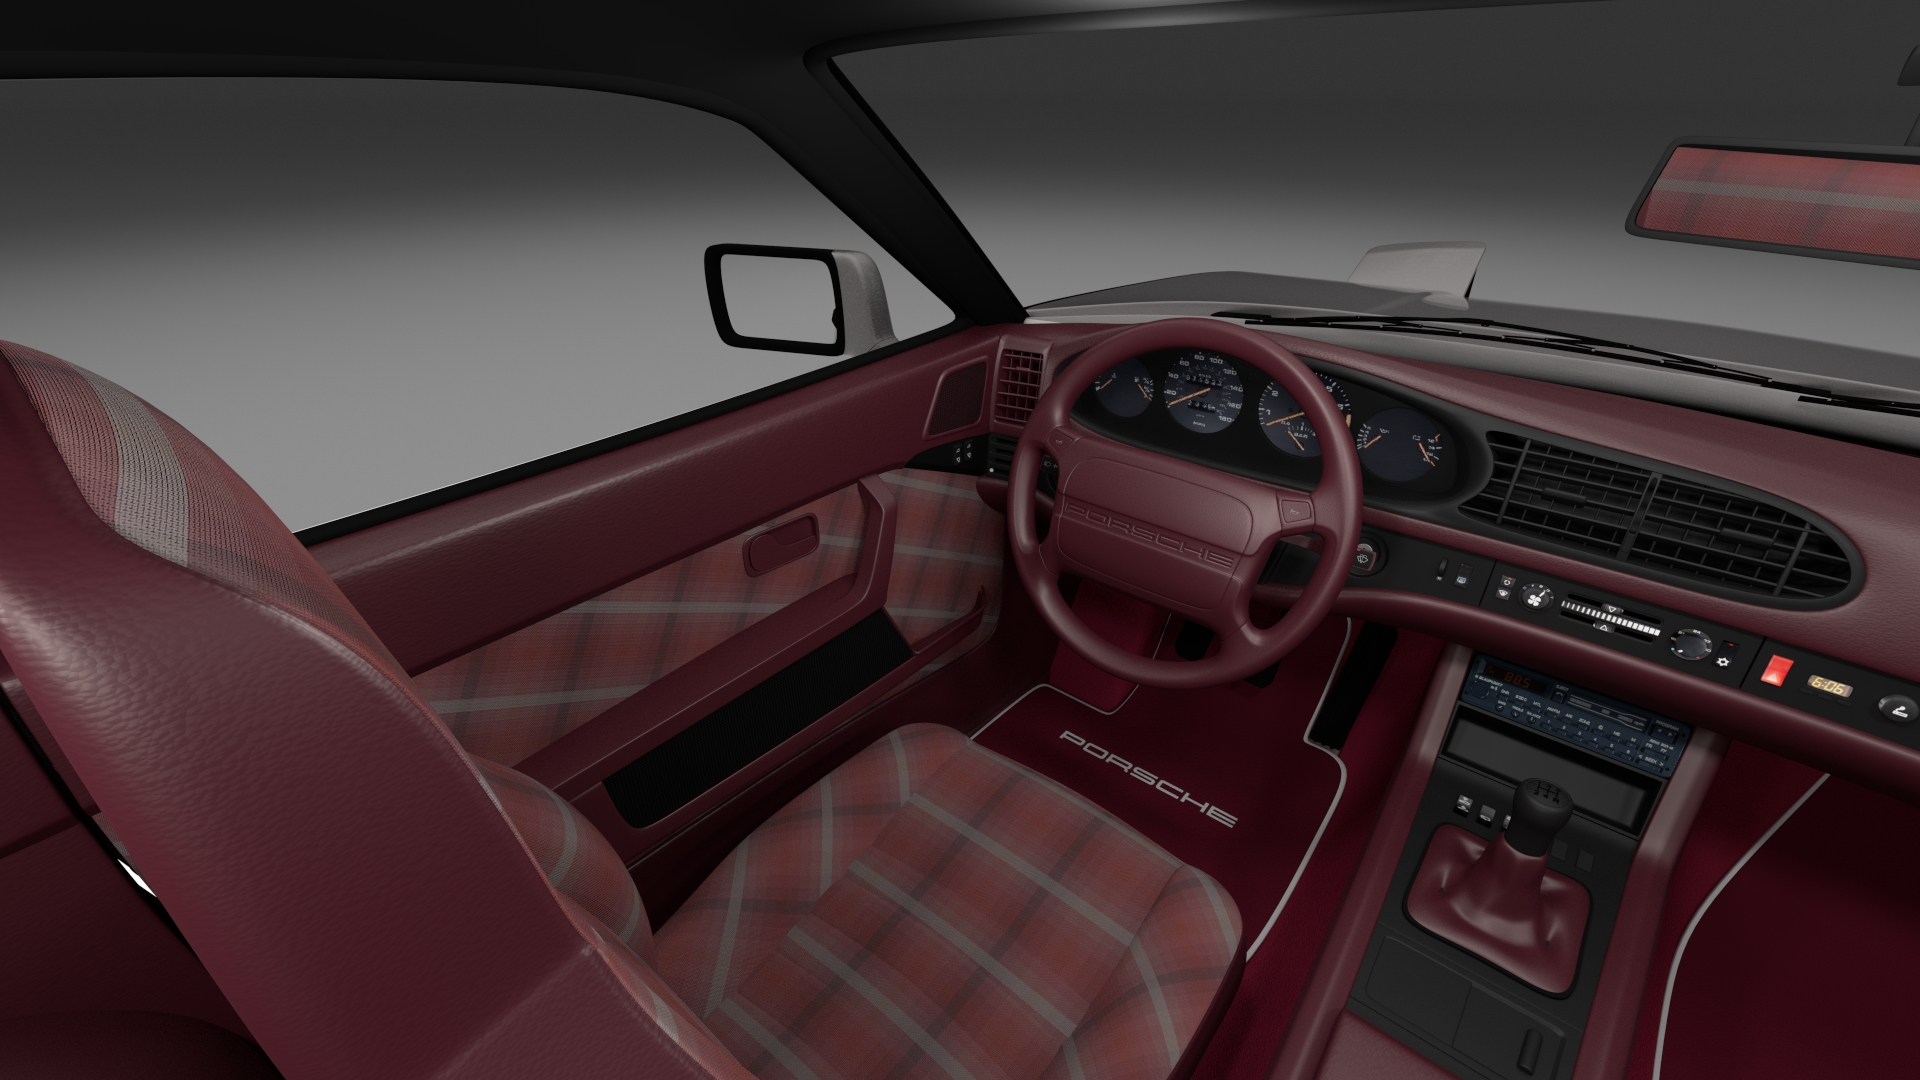 porsche 944 turbo s with interior rev by dragosburian 3docean. Black Bedroom Furniture Sets. Home Design Ideas